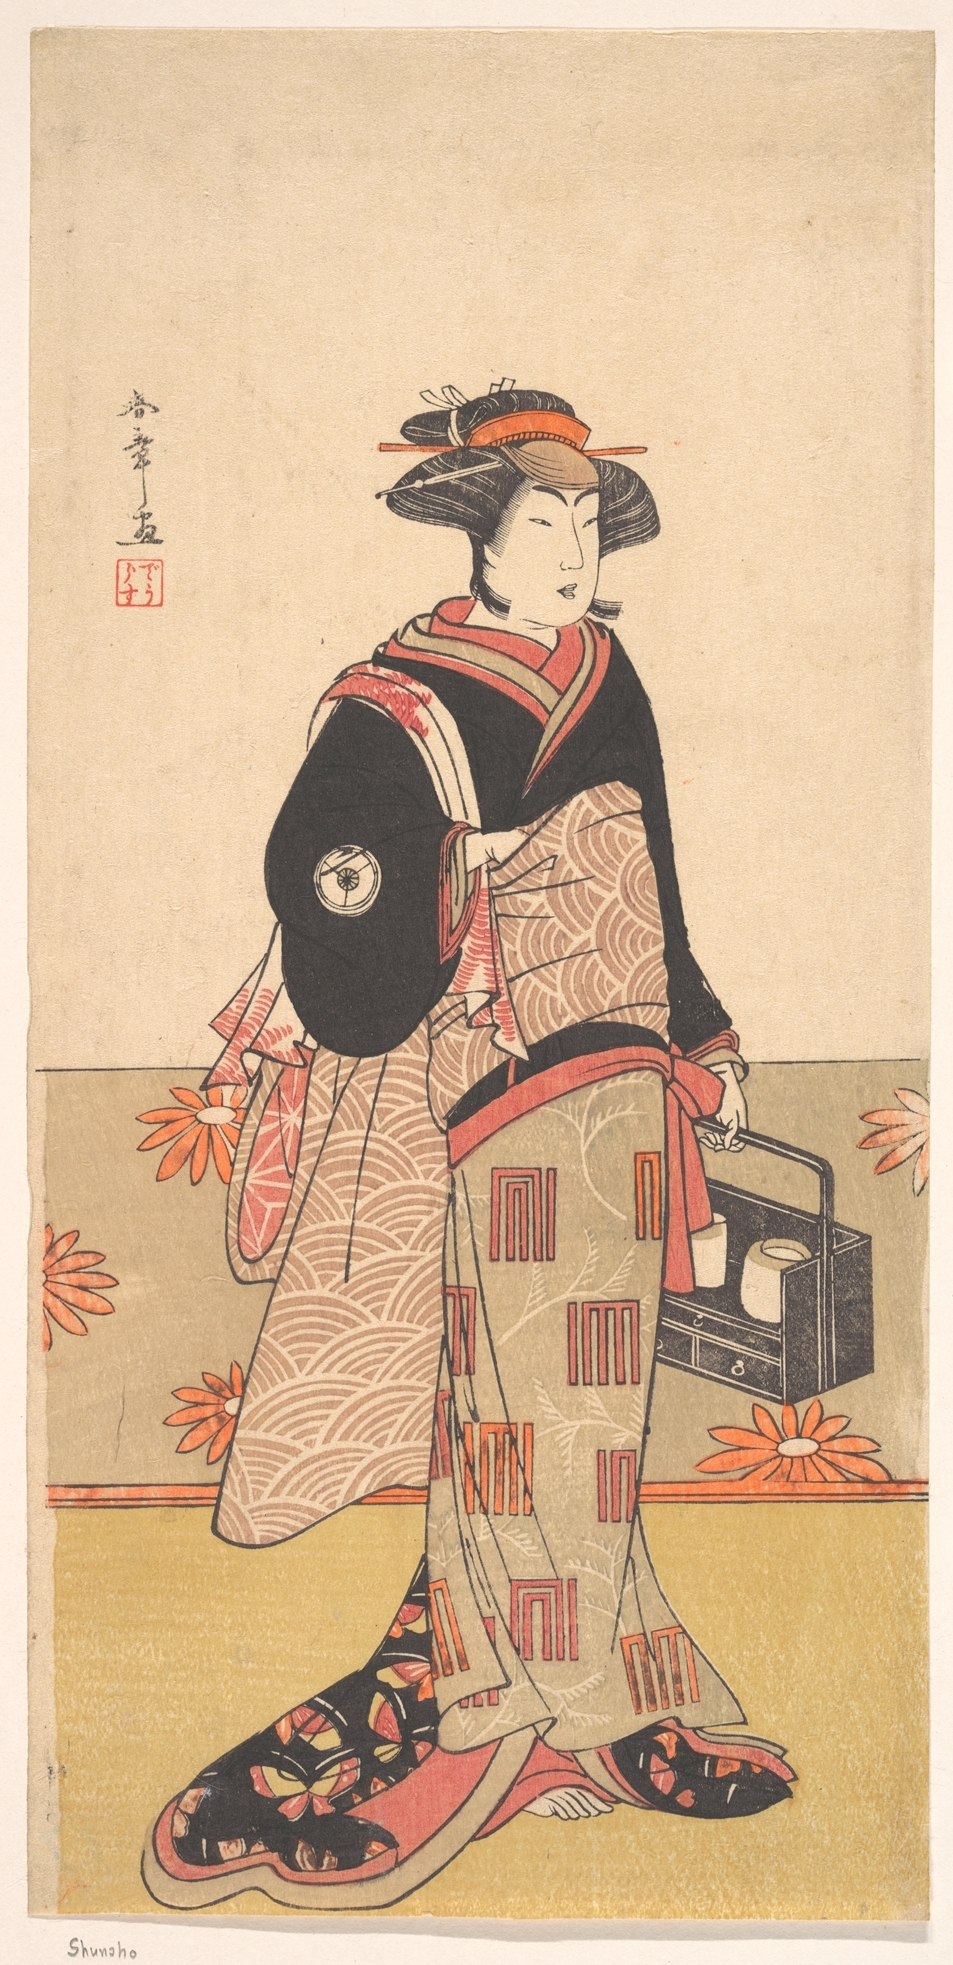 The Actor Iwai Hanshiro IV as a Woman in a Black Kimono by Shunsho